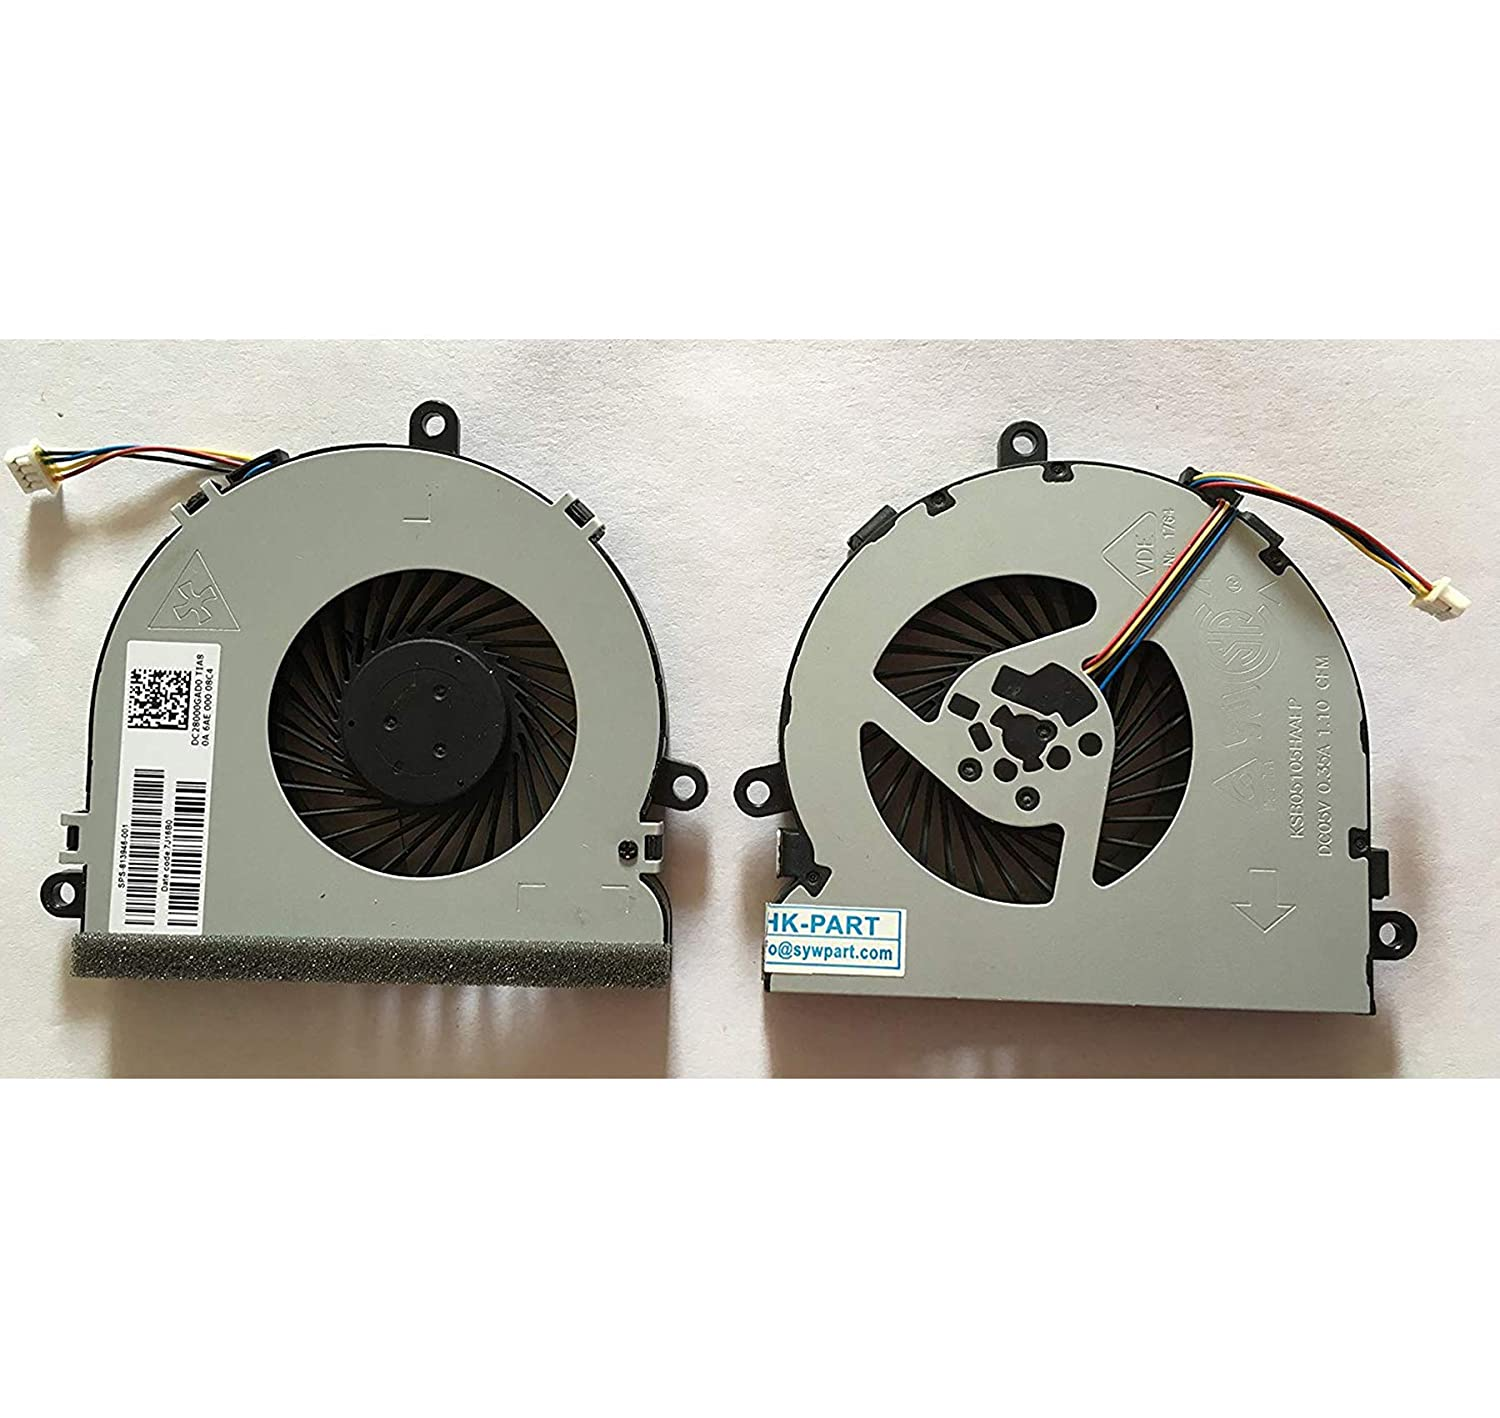 SYW/·pcparts Replacement CPU Cooling Fan Compatible HP Pavilion TPN-C125 TPN-C126 TPN-C130 HQ-TRE HP 250 G6 255 G6 Series 4-Pin SPS 813946-001